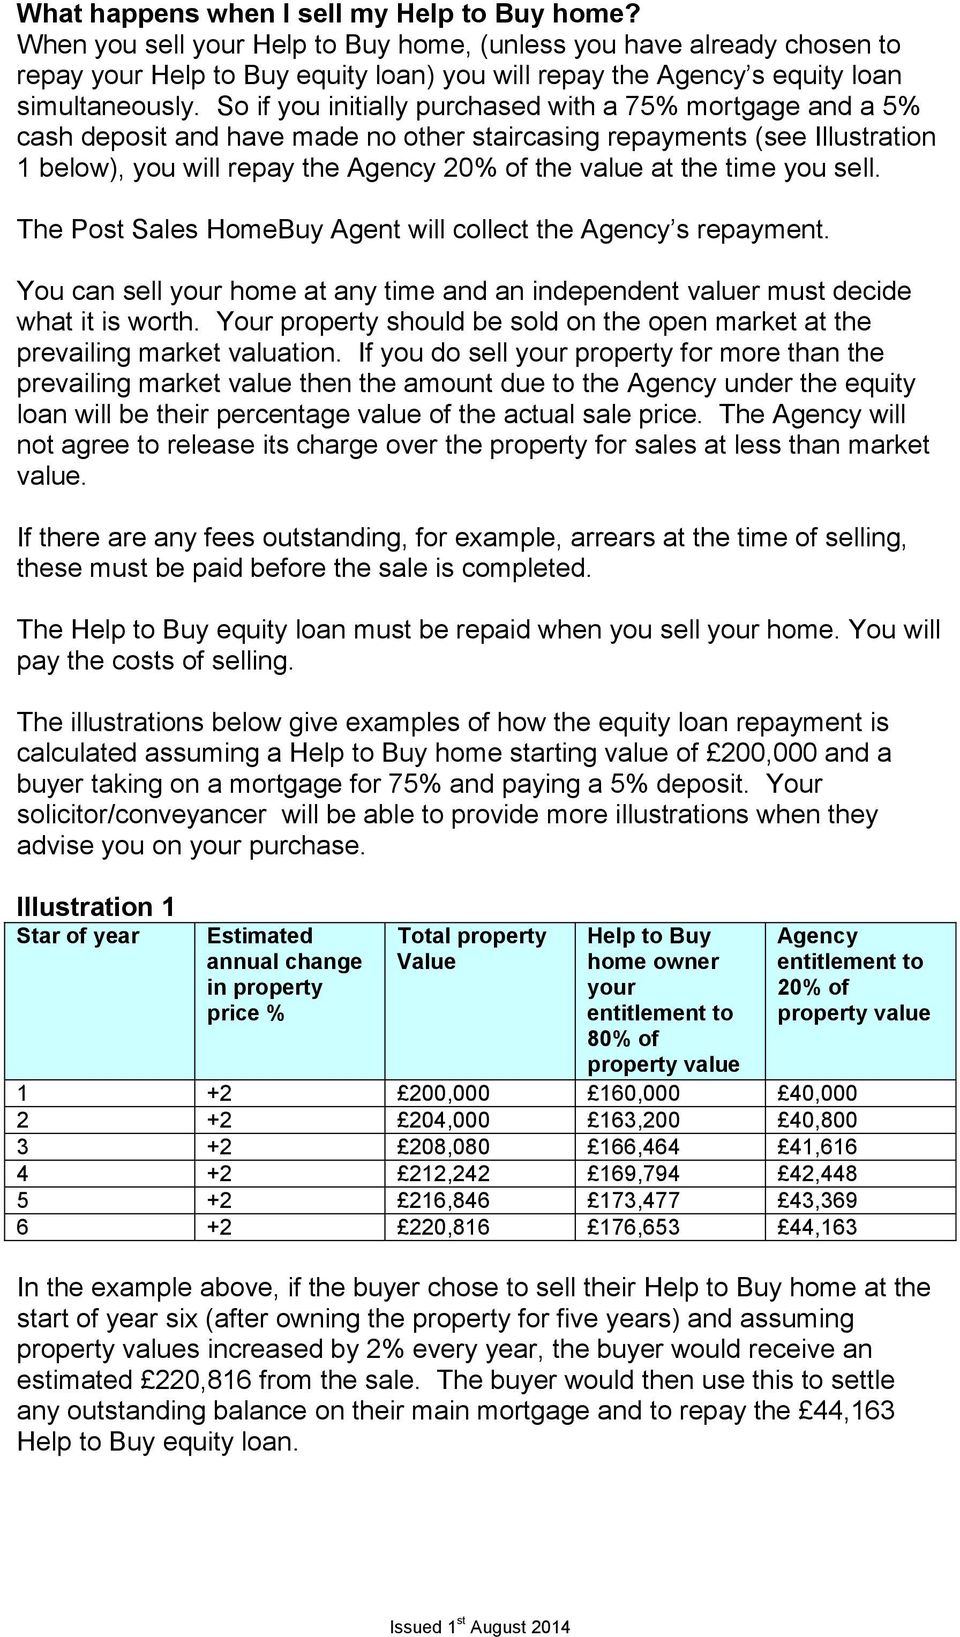 So if you initially purchased with a 75% mortgage and a 5% cash deposit and have made no other staircasing repayments (see Illustration 1 below), you will repay the Agency 20% of the value at the